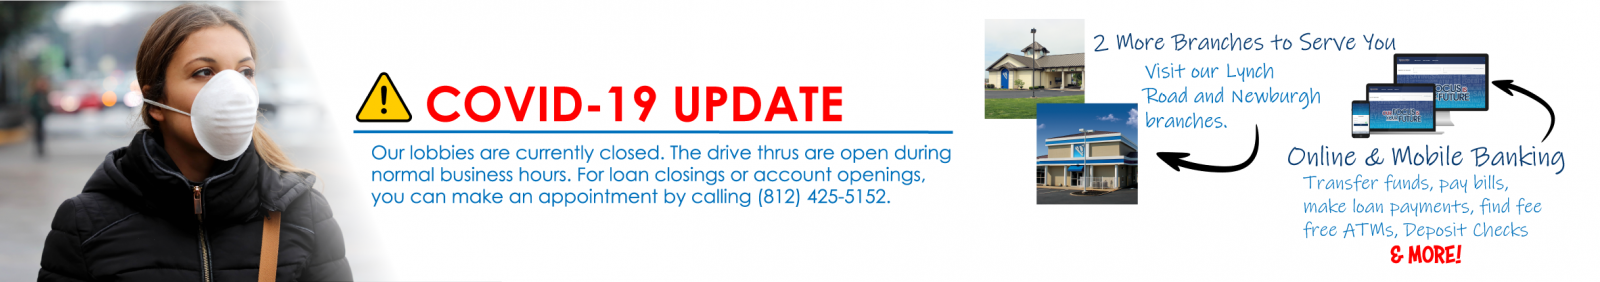 Our branch lobbies are closed. Drive Thrus are Open normal business hours. Don't forget we have two NEW branches to serve you as well as mobile and online banking options.